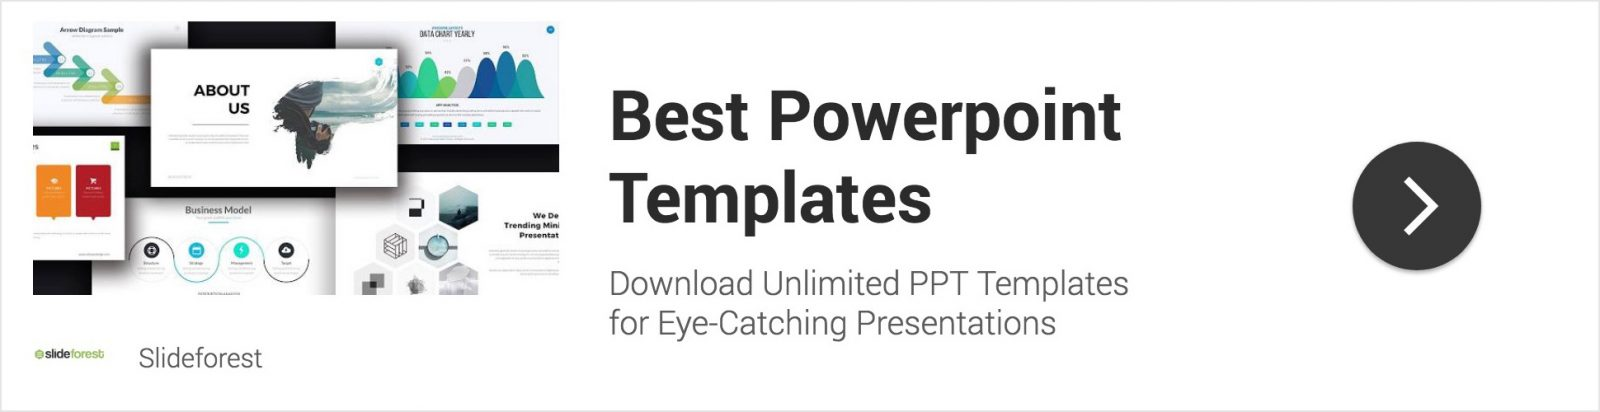 25 free business powerpoint templates for presentations business powerpoint templates cheaphphosting Image collections